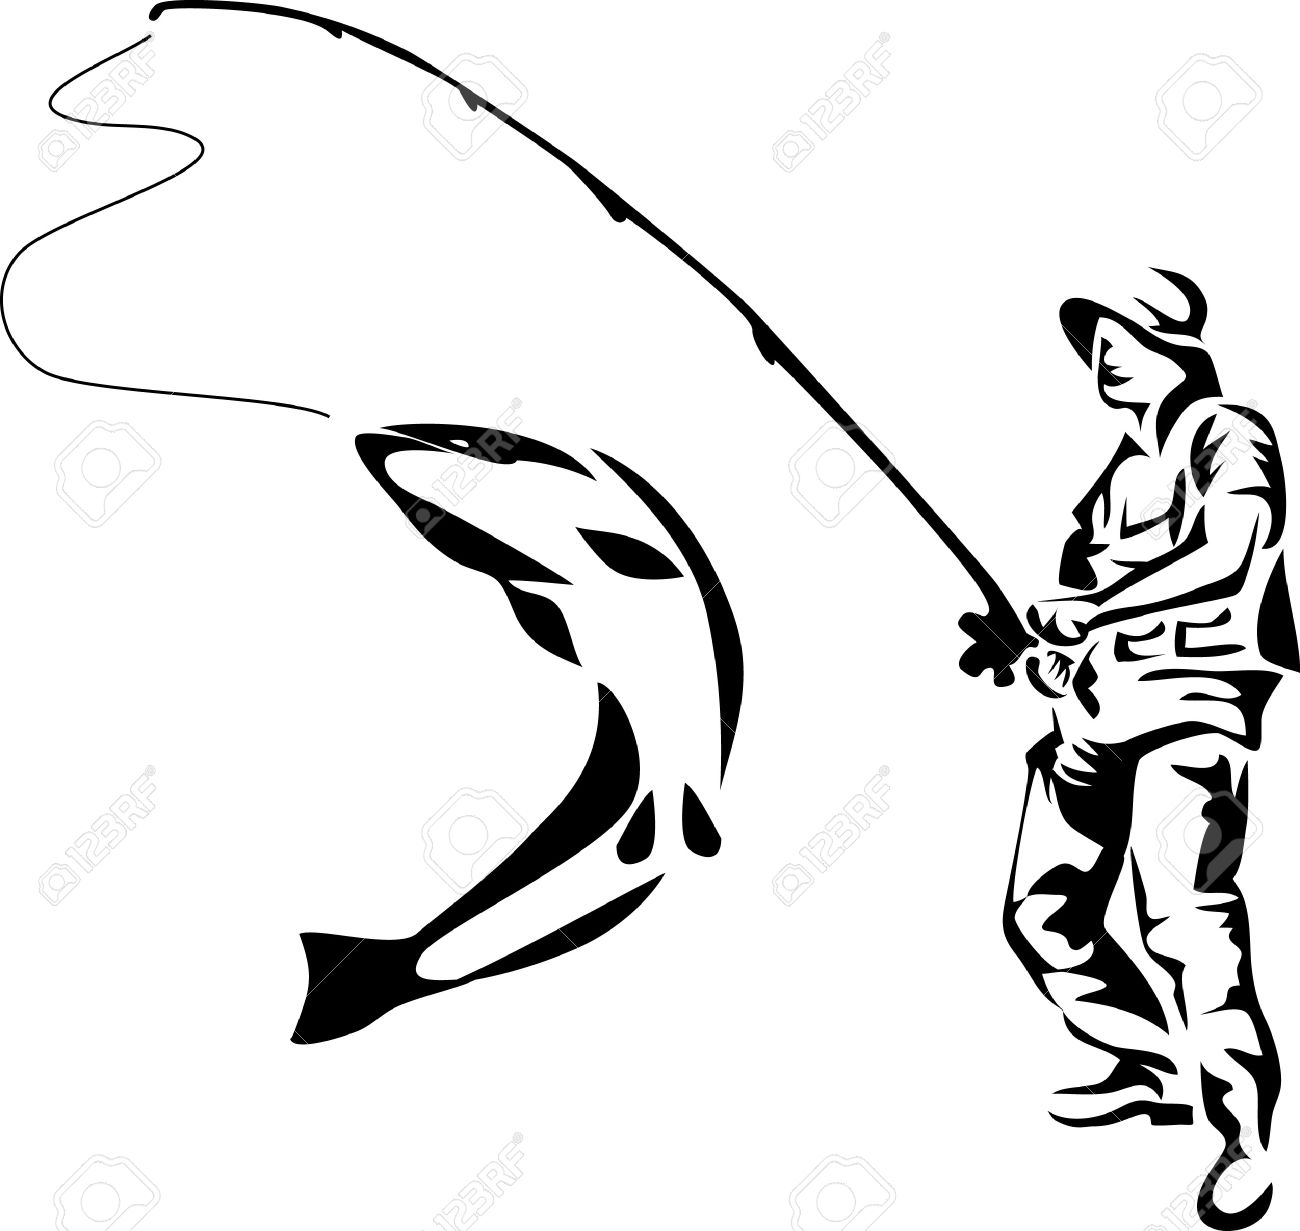 1300x1231 Fly Fishing Clipart Black And White Clip Art Images